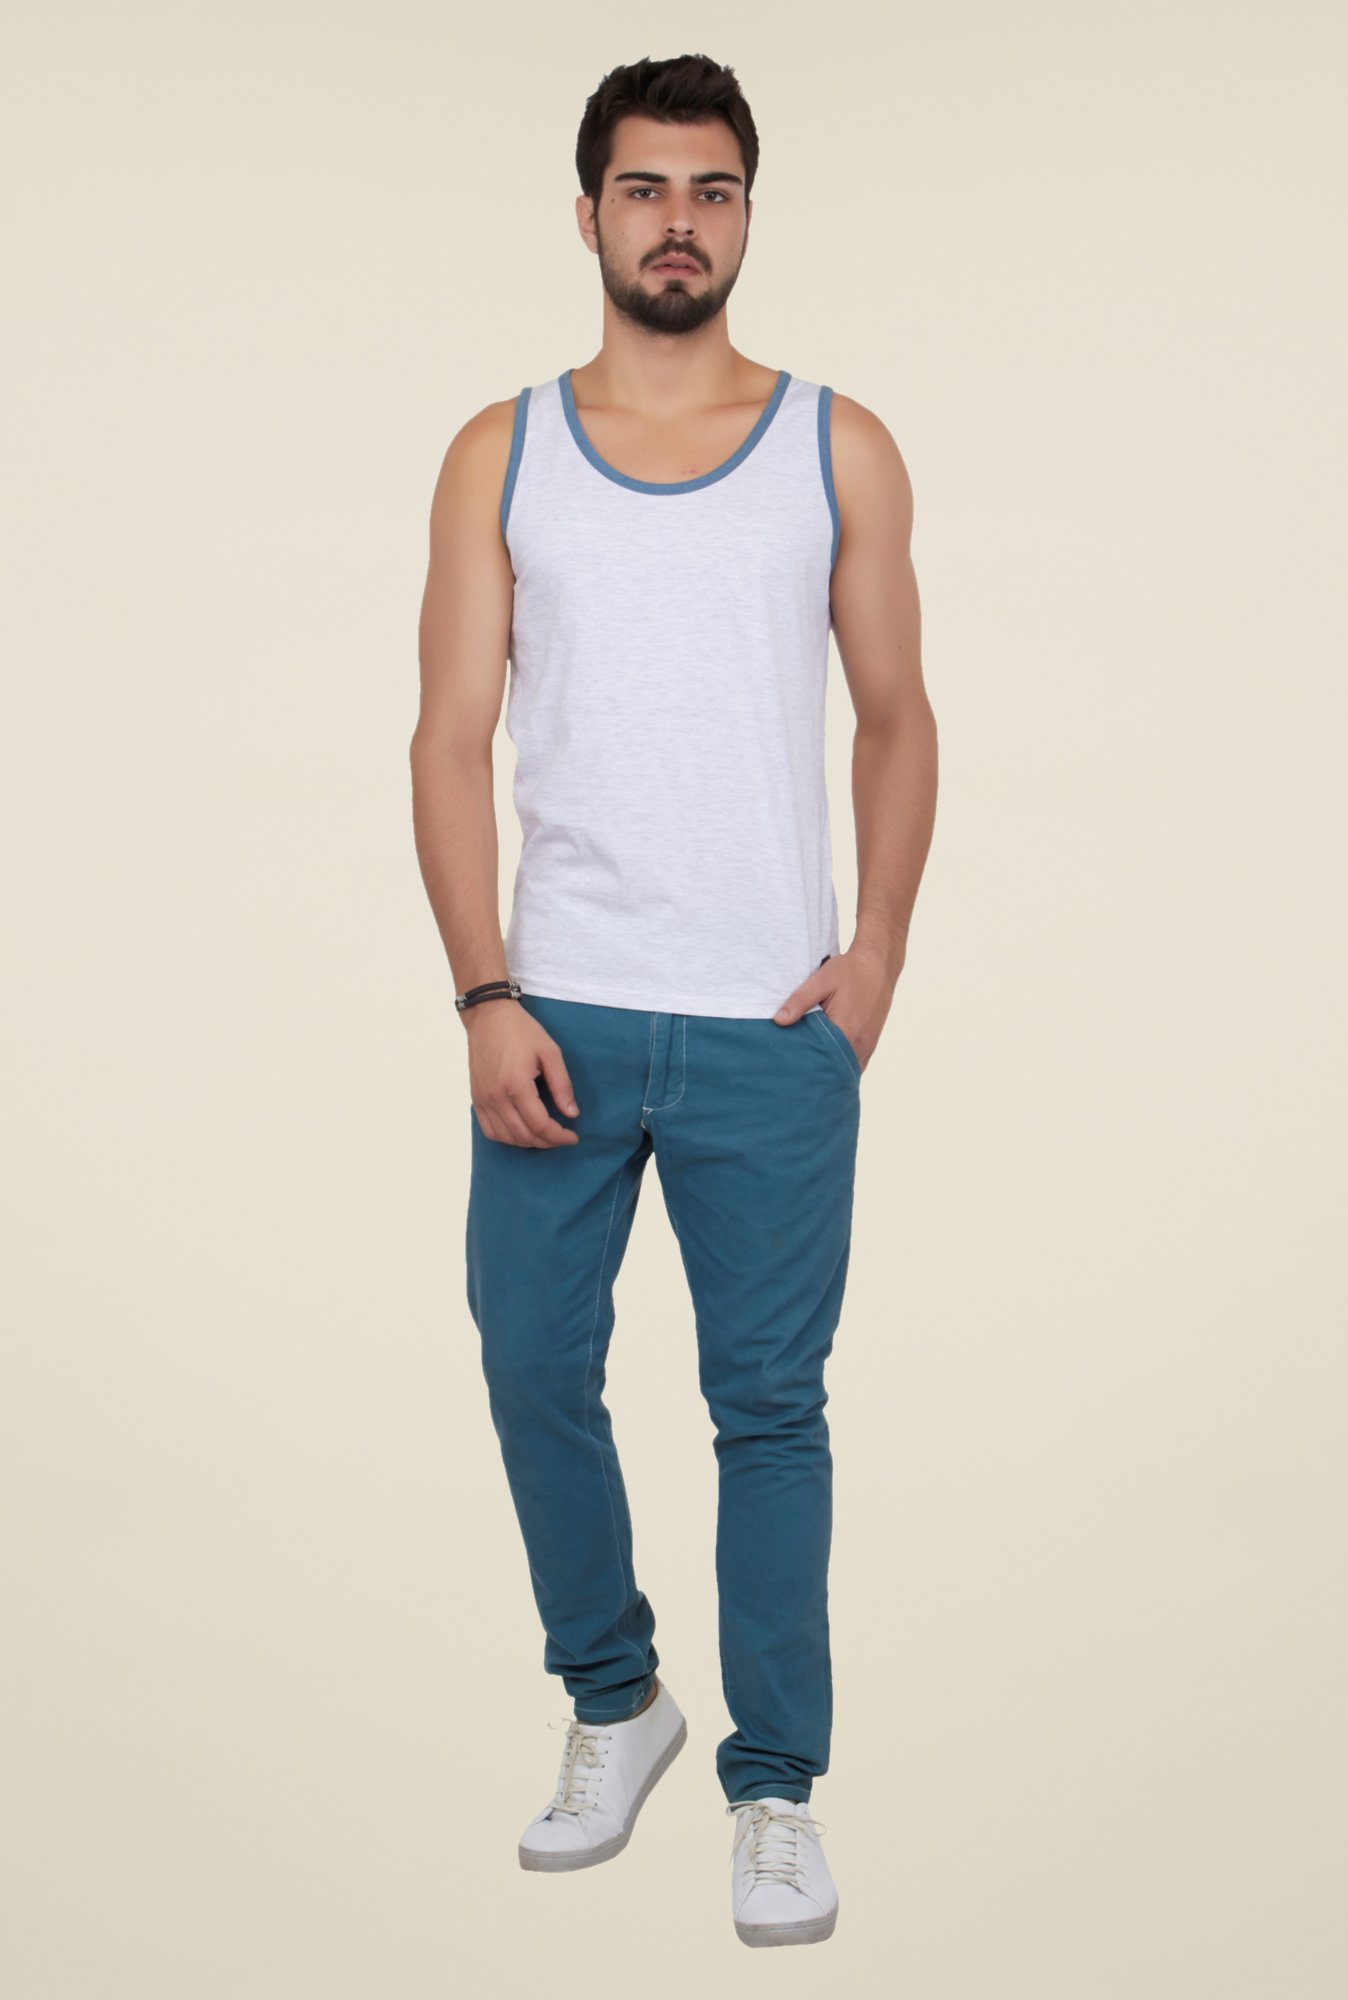 Cult Fiction White Solid Vest